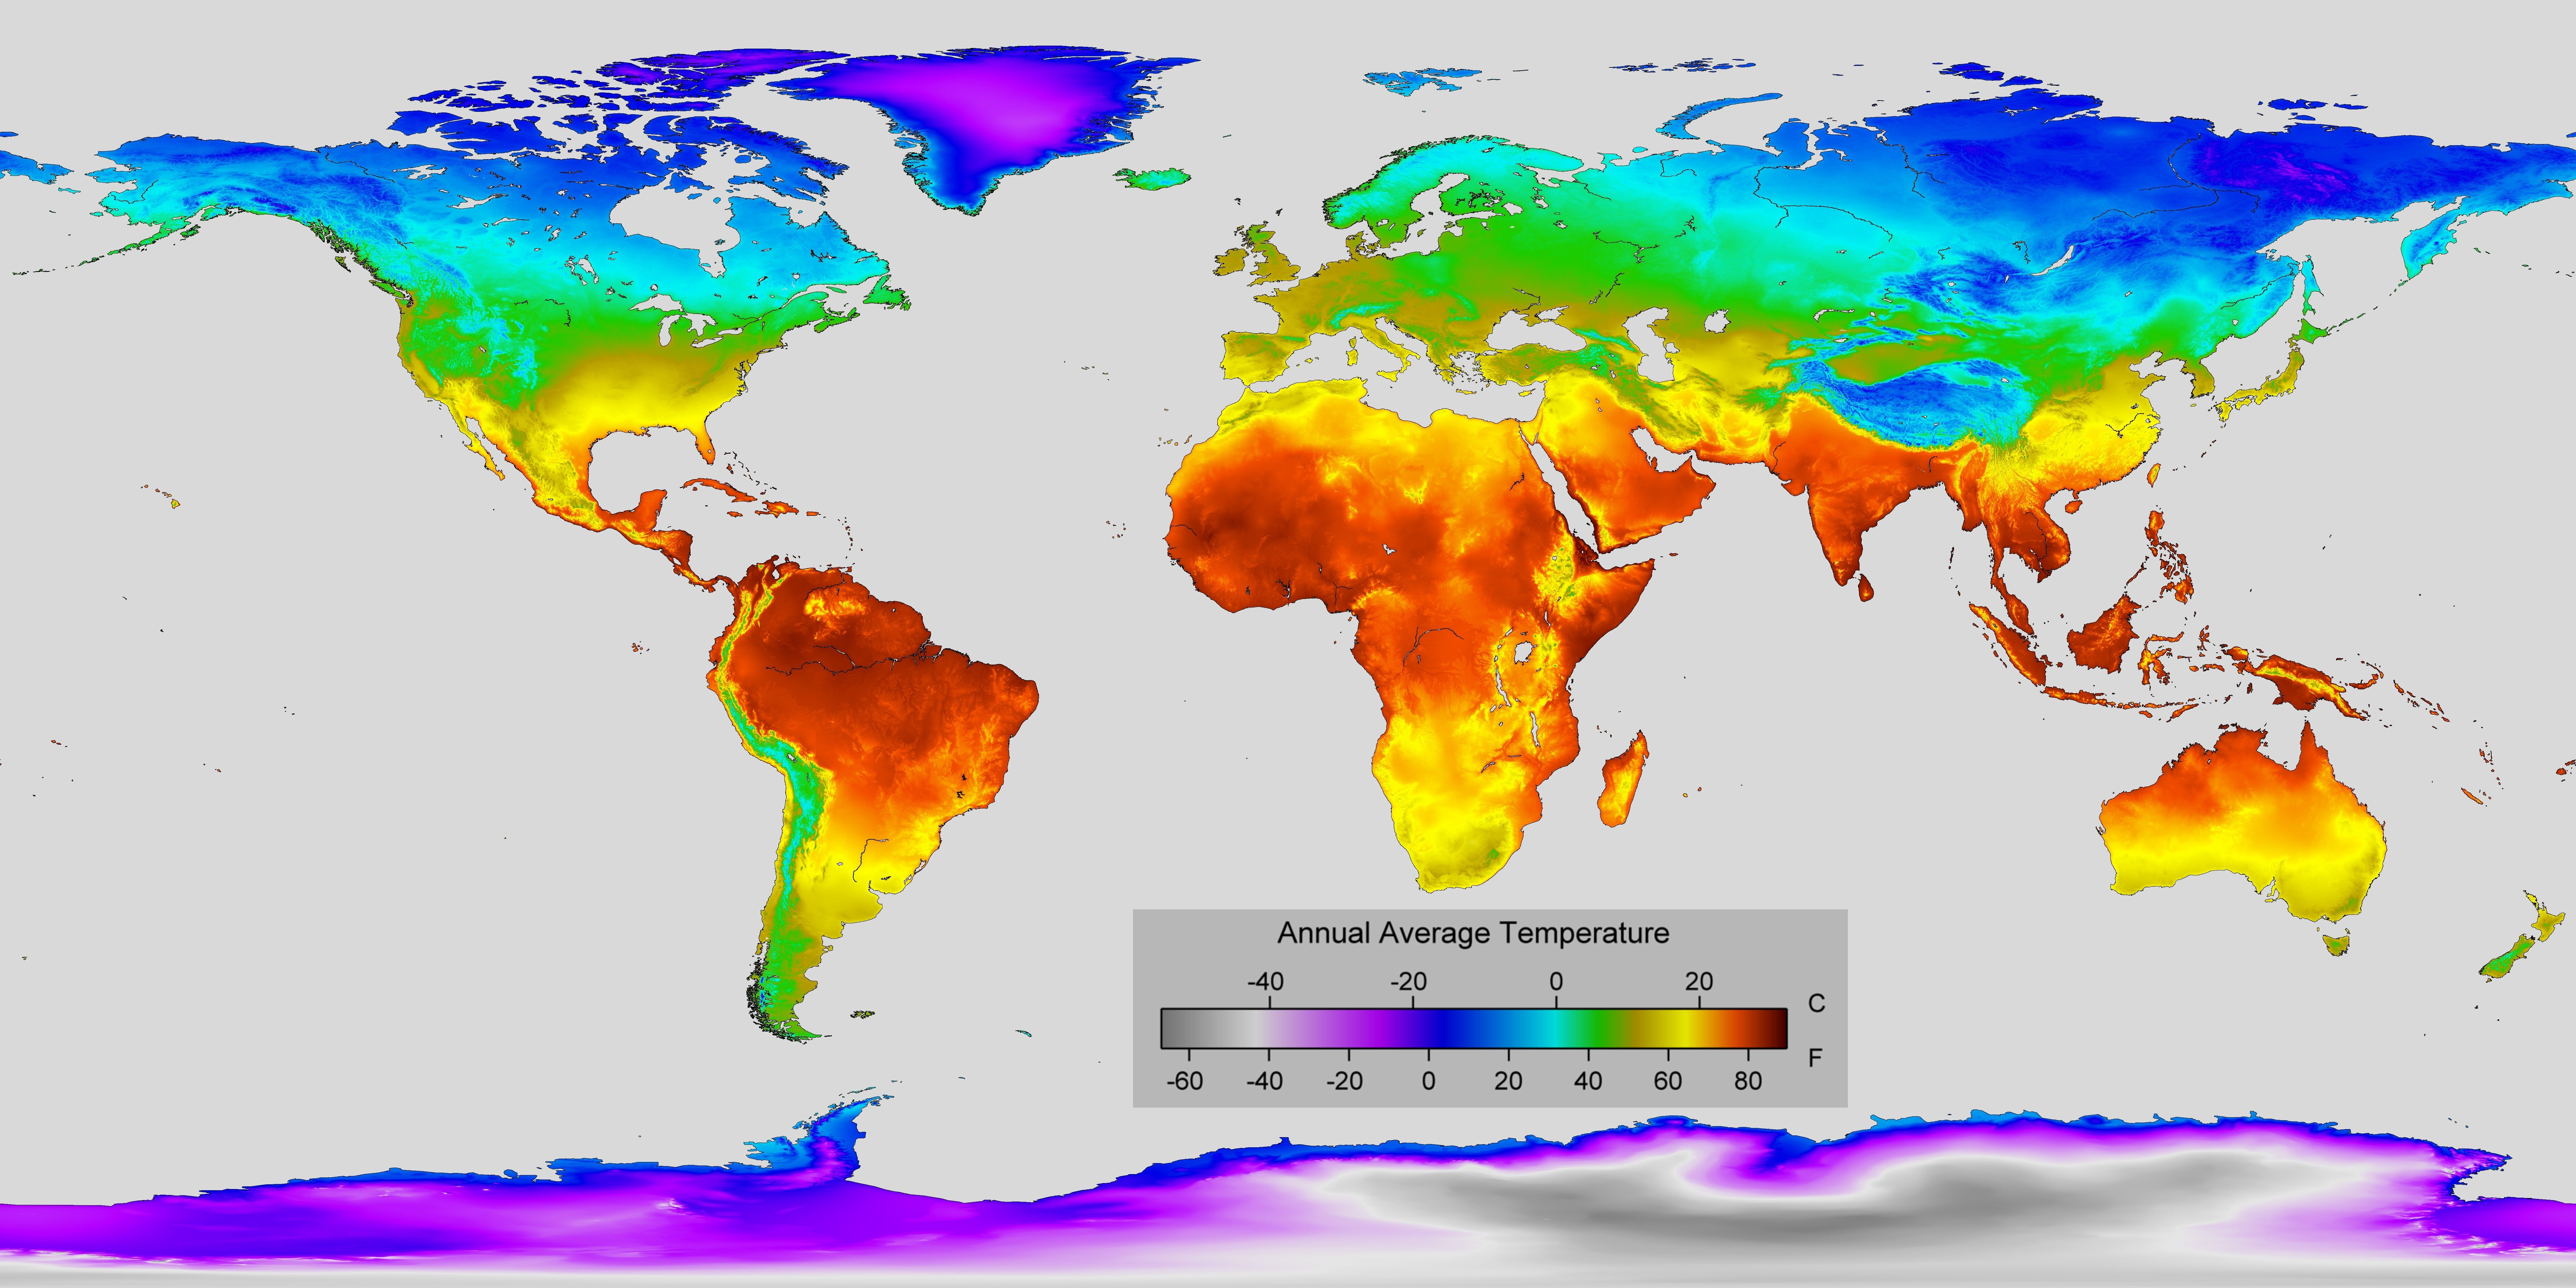 temperature around the world map Detailed Map Of Annual Average Temperature Around The World World Temperature Map Temperatures Around The World Detailed Map